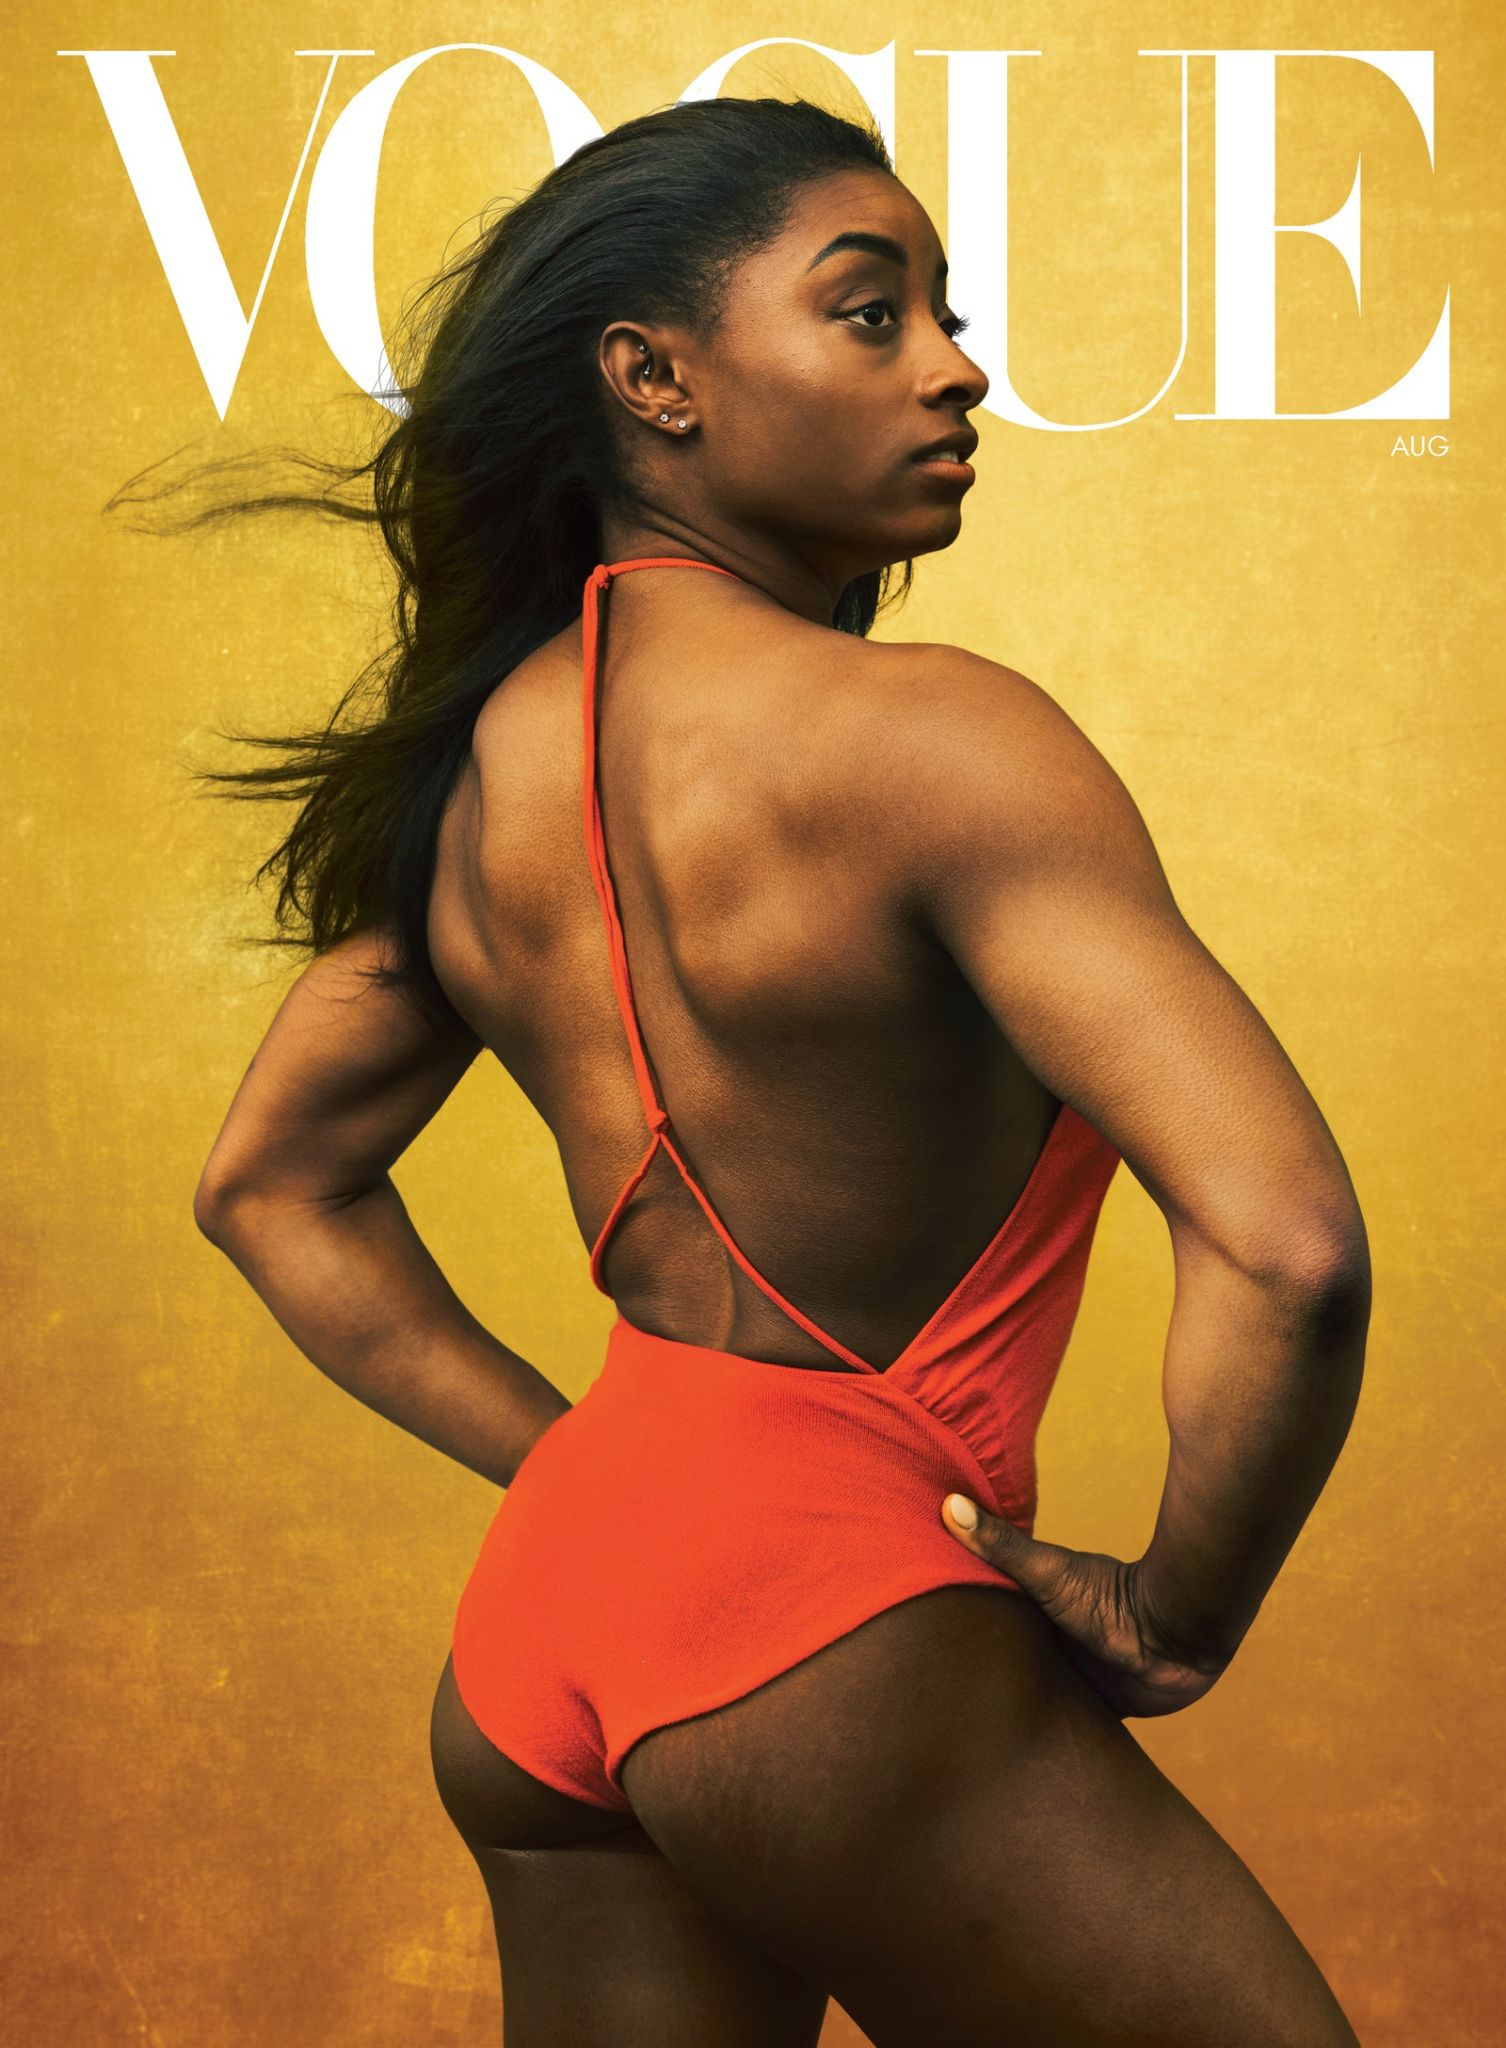 Simone Biles talks the pandemic, the Olympics and growing up in Vogue